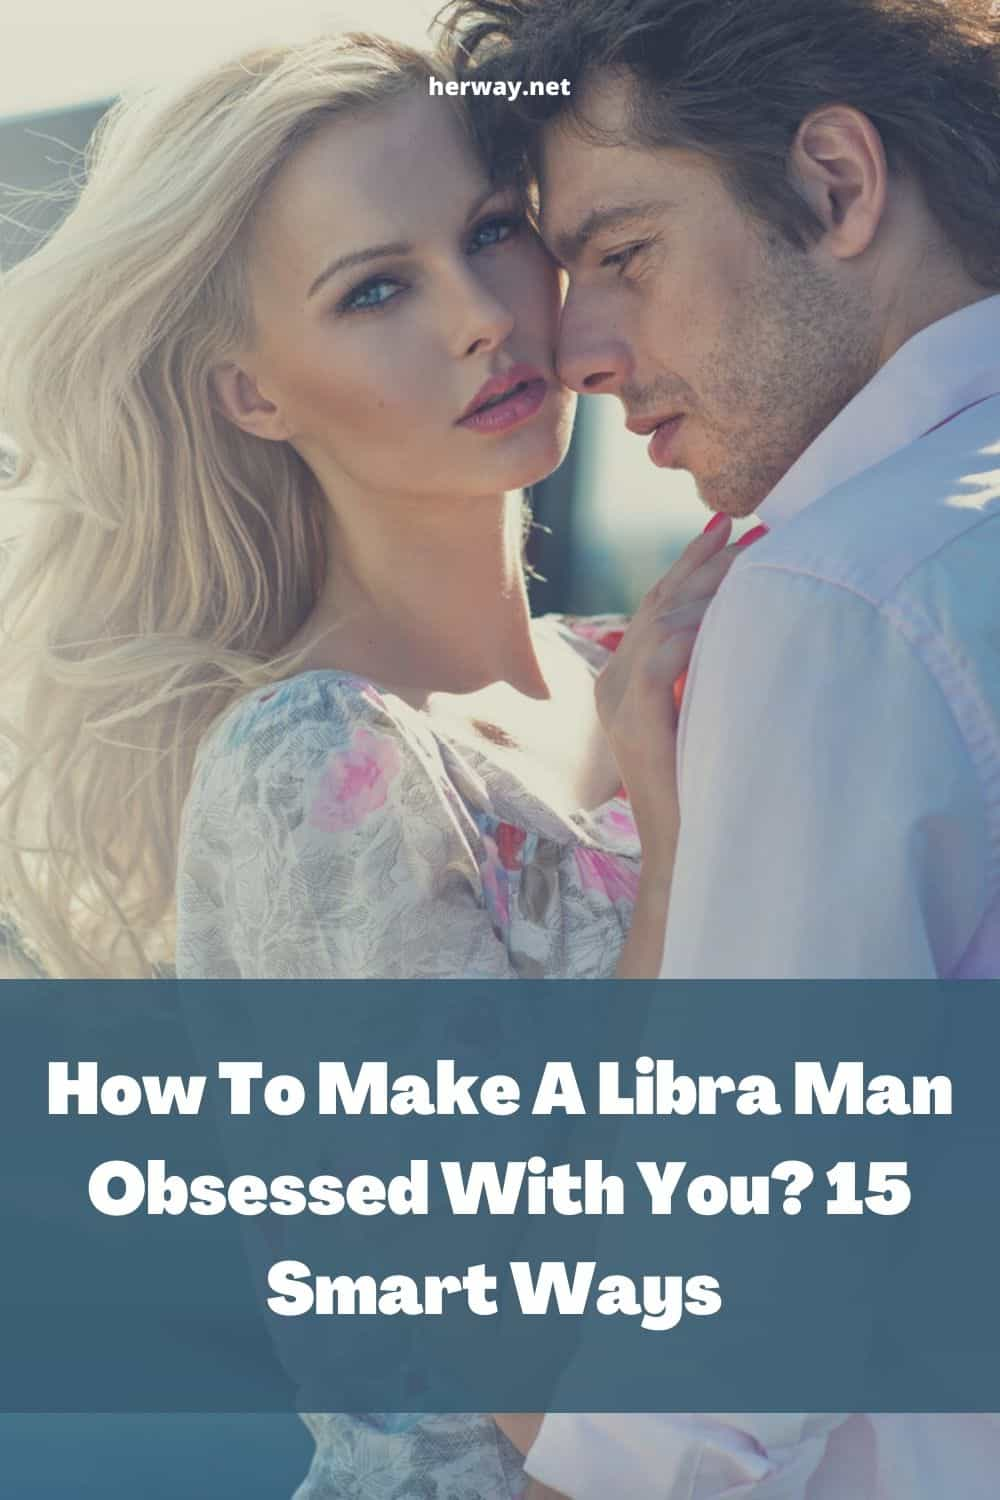 How To Make A Libra Man Obsessed With You 15 Smart Ways